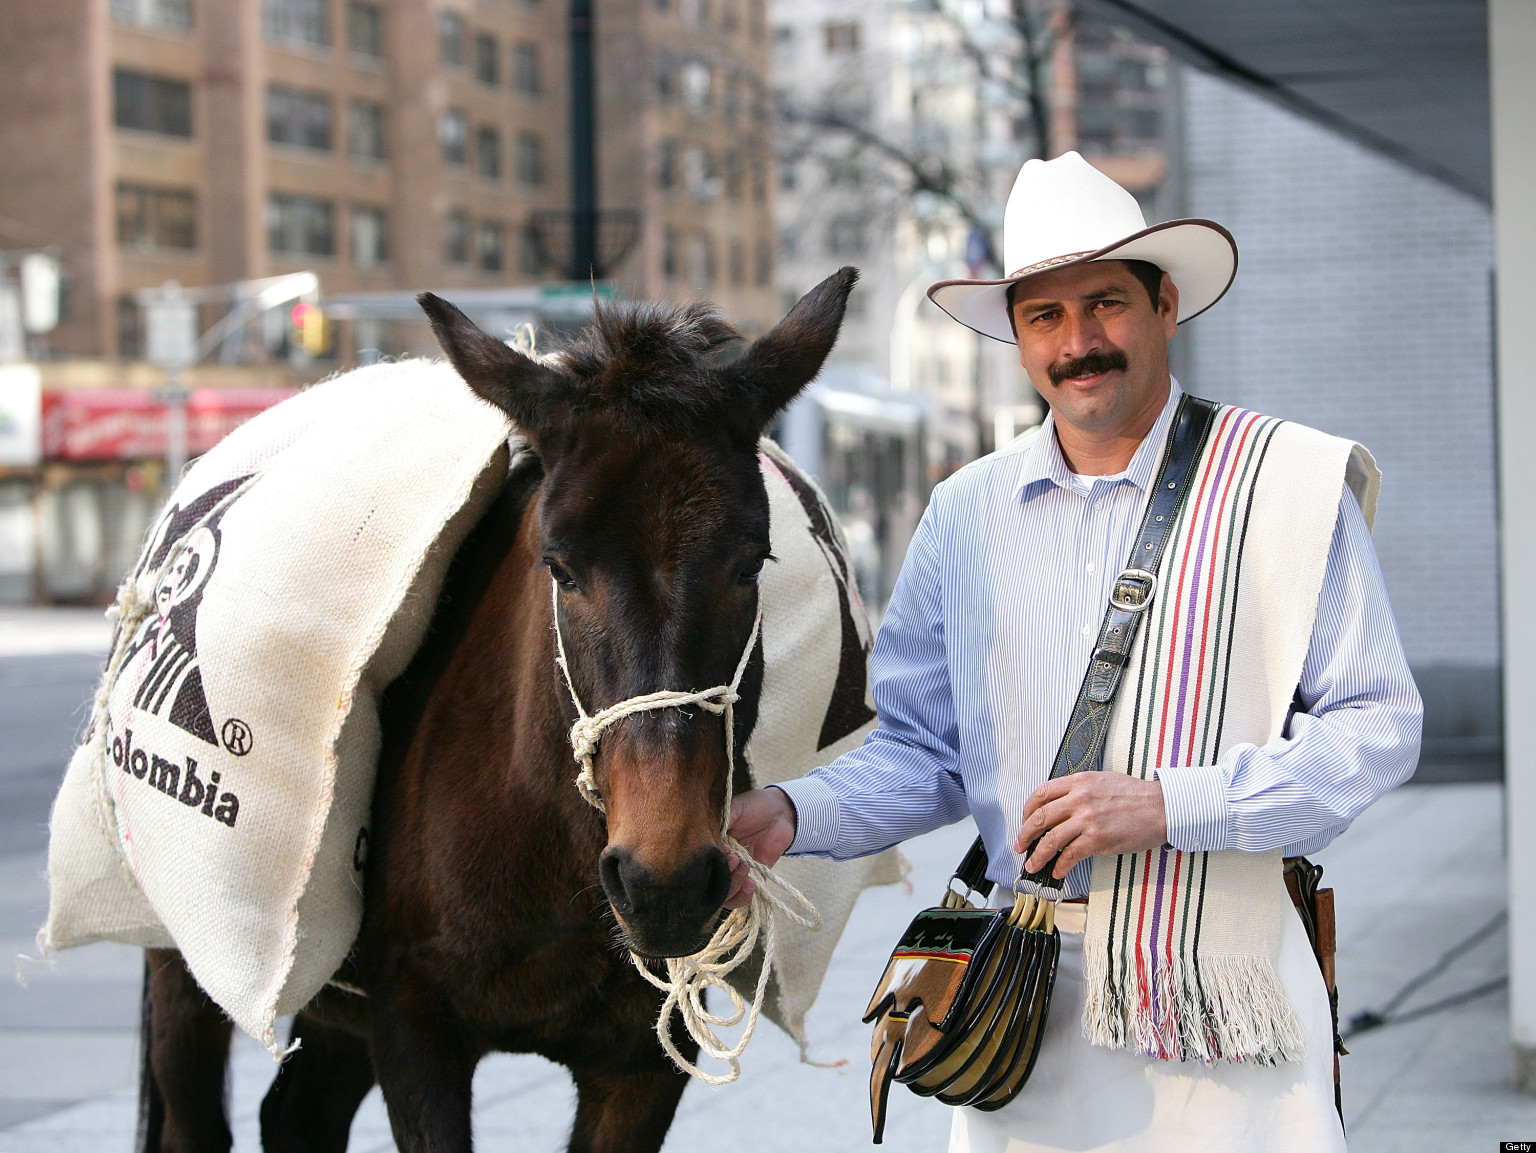 Juan Valdez Visits New York To Hand Out Cups Of 100% ...